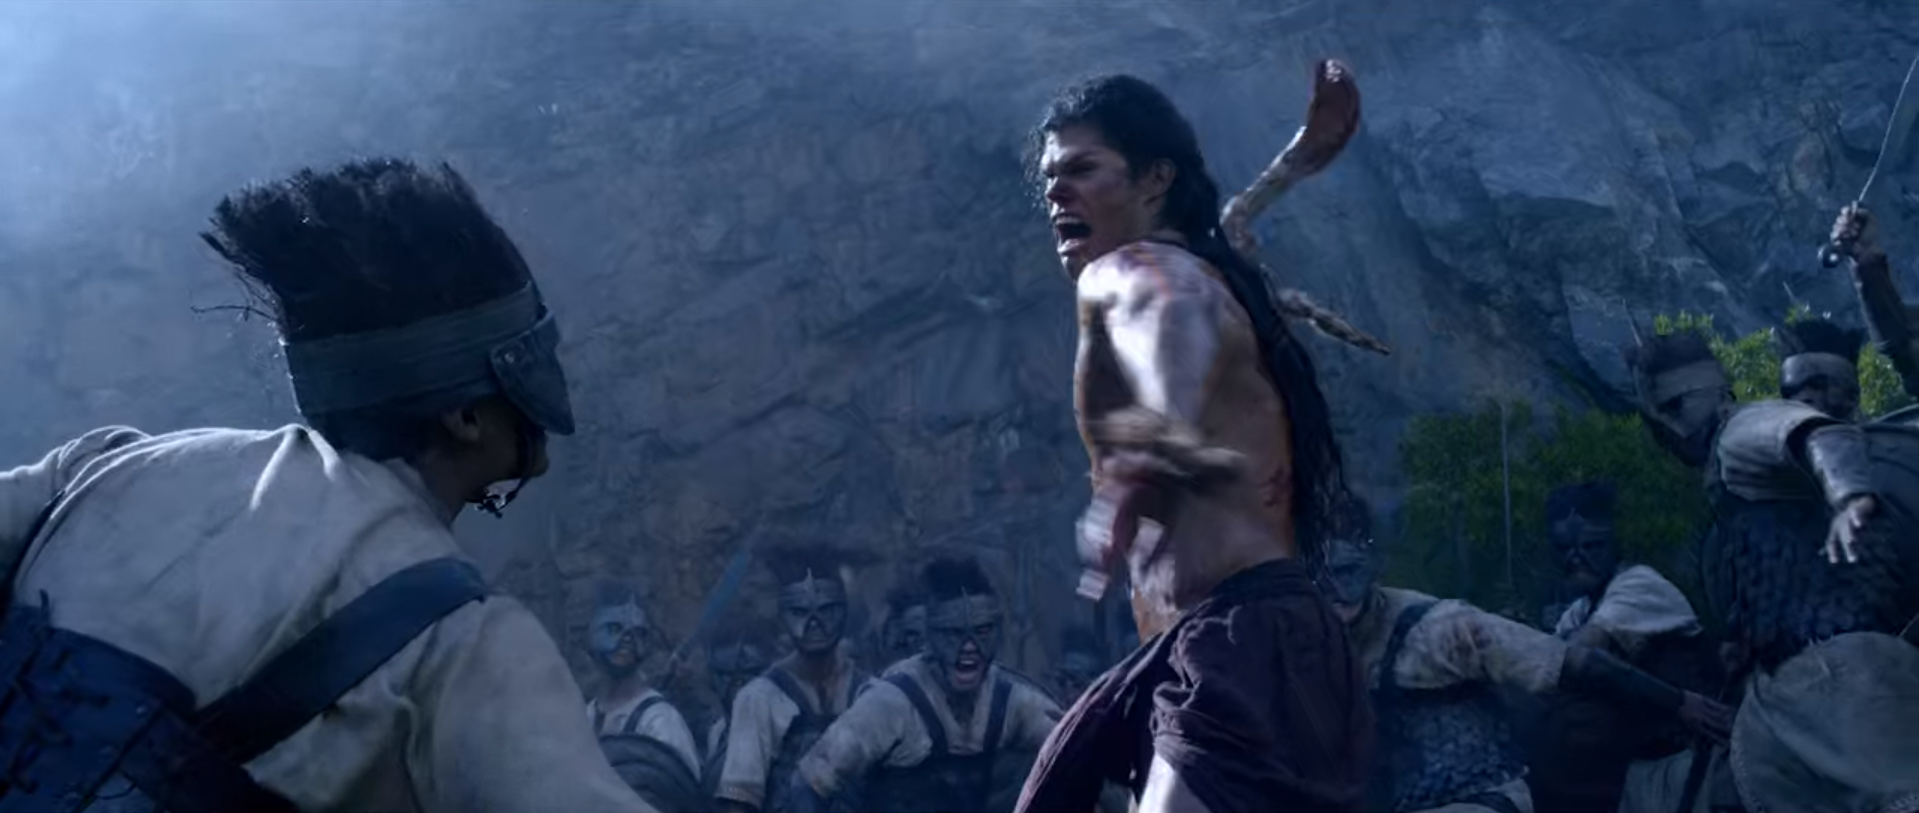 Taylor James as Samson fighting Philistine warrior in Pureflix Christian Movie